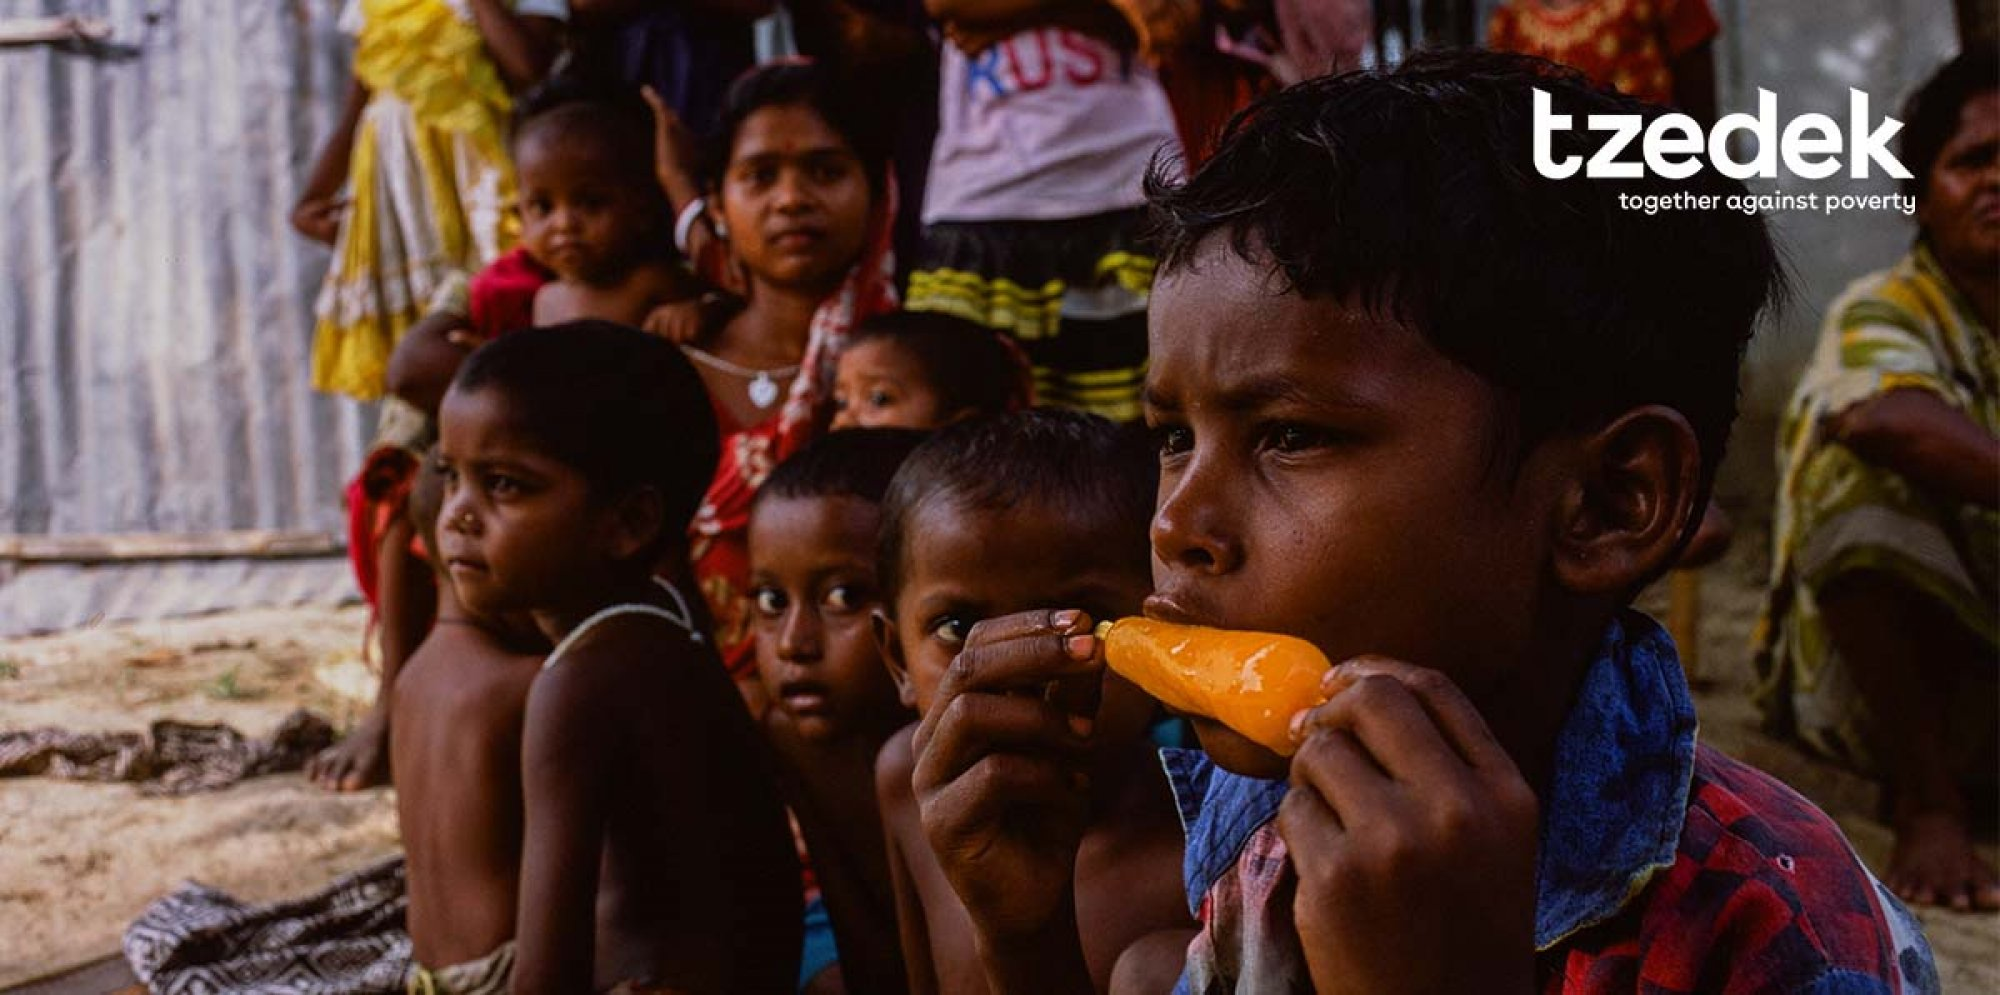 a group of brown children sit in a row. The one closest to the viewer is eating an orange ice lolly, looking pensive. The two next to him watch him, the fourth is looking straight-ahead.